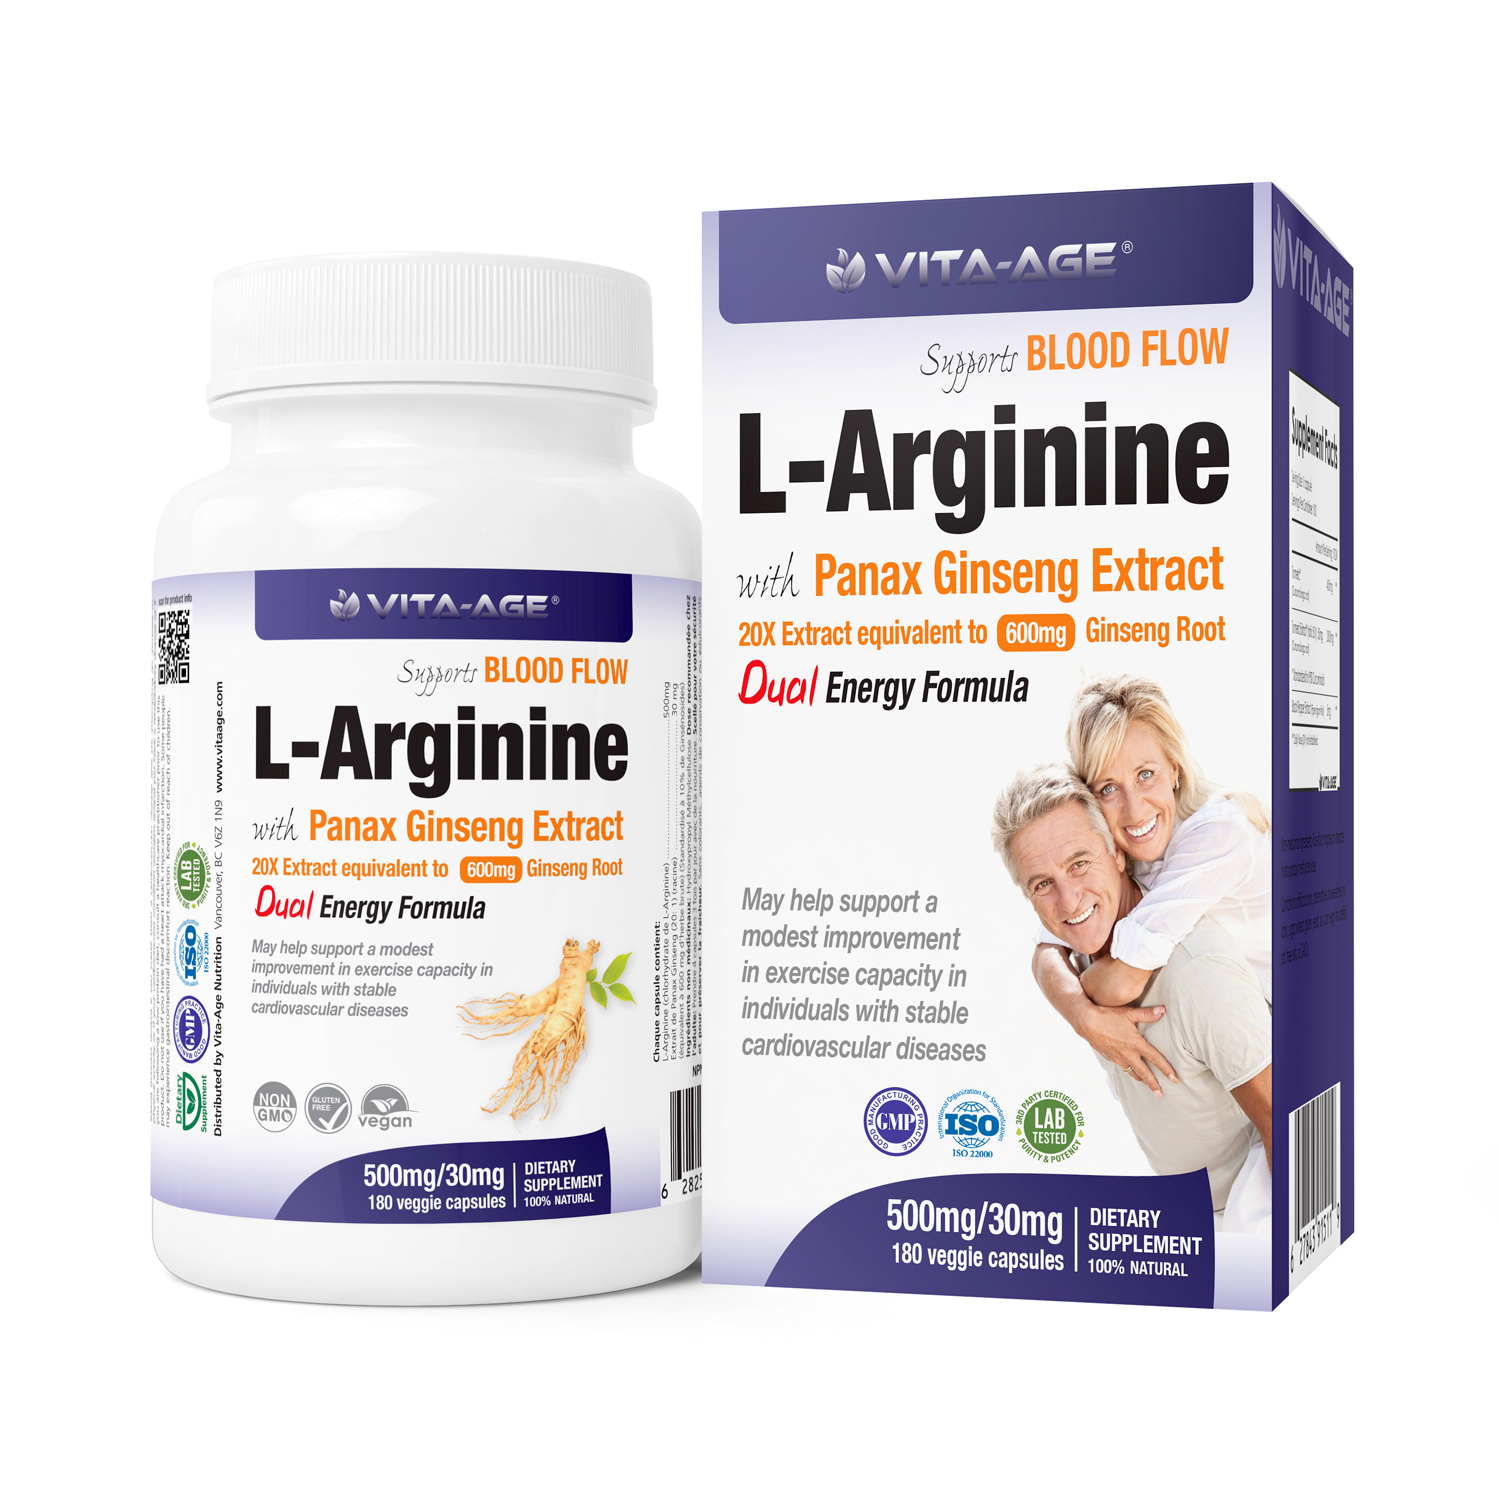 L-Arginine with Panax Ginseng Extract - Vita-Age Nutrition